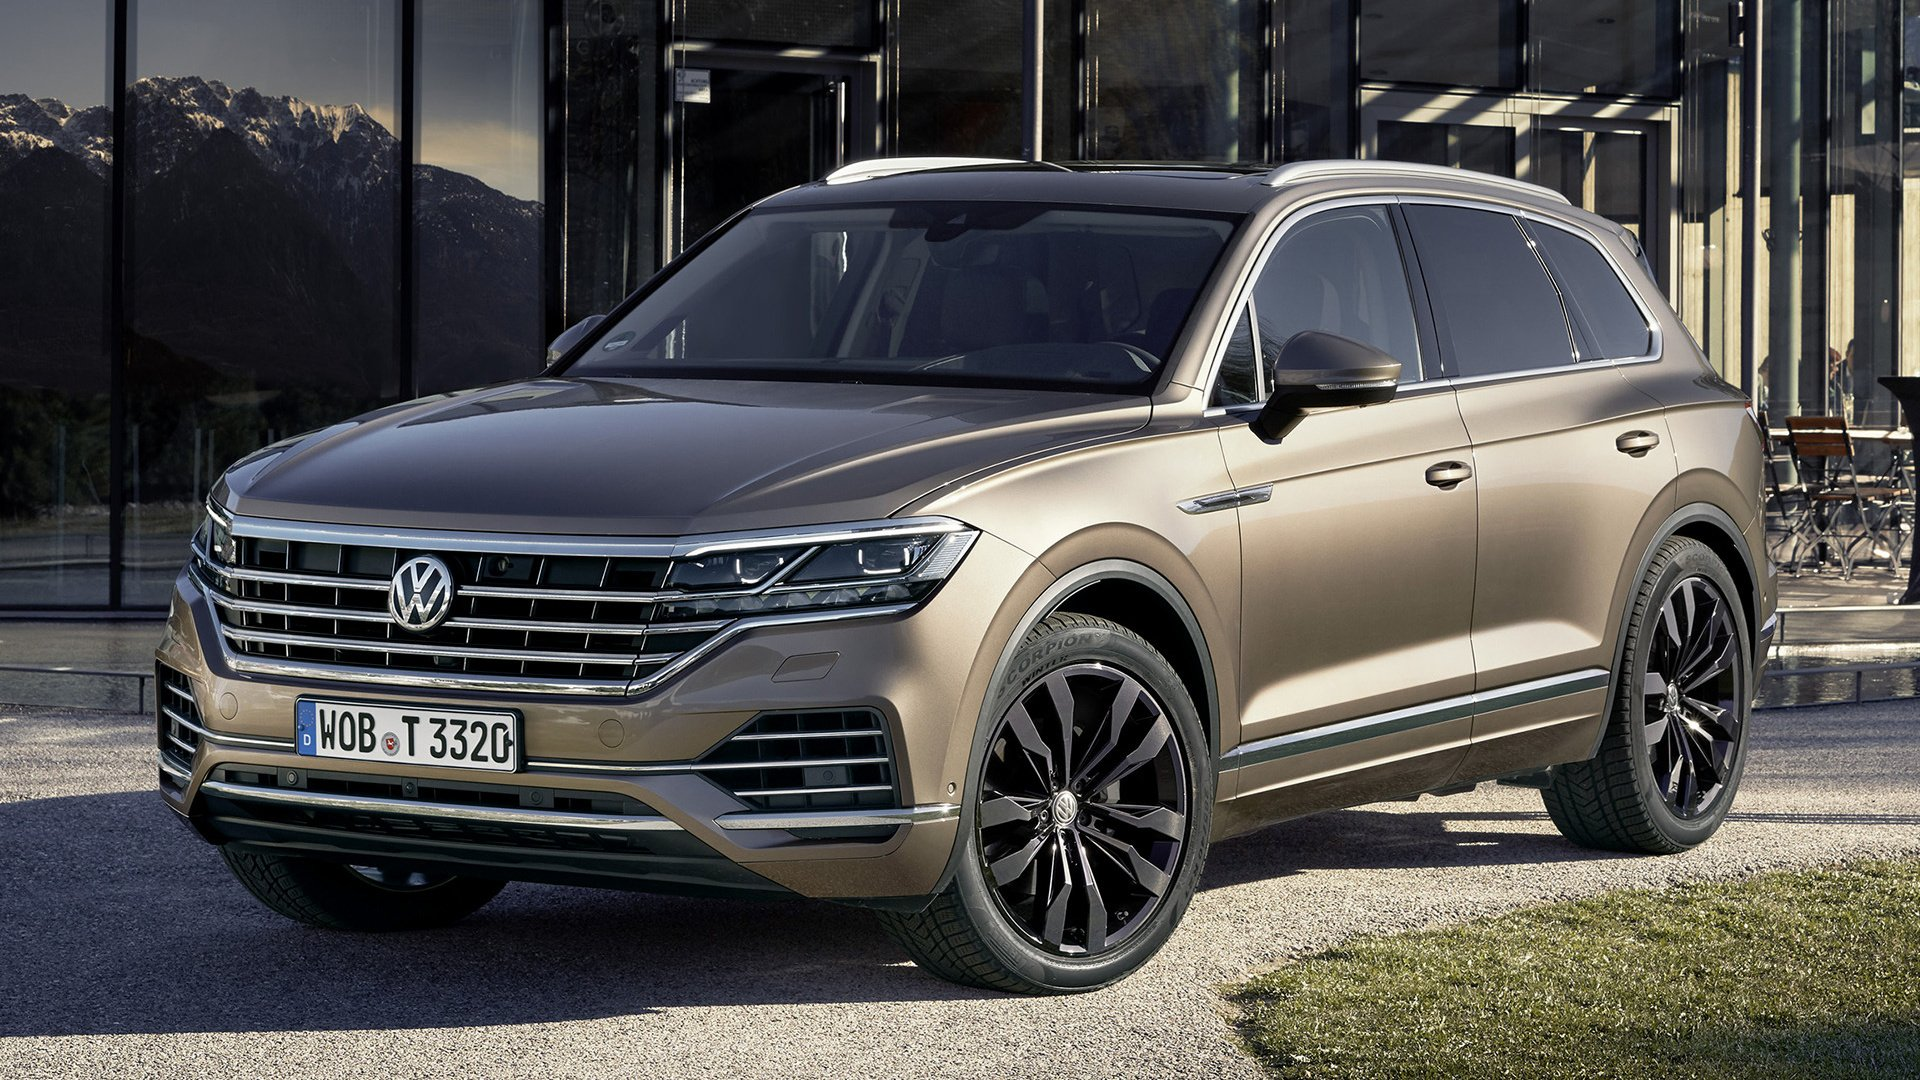 2018 Volkswagen Touareg HD Wallpaper Background Image 1920x1080